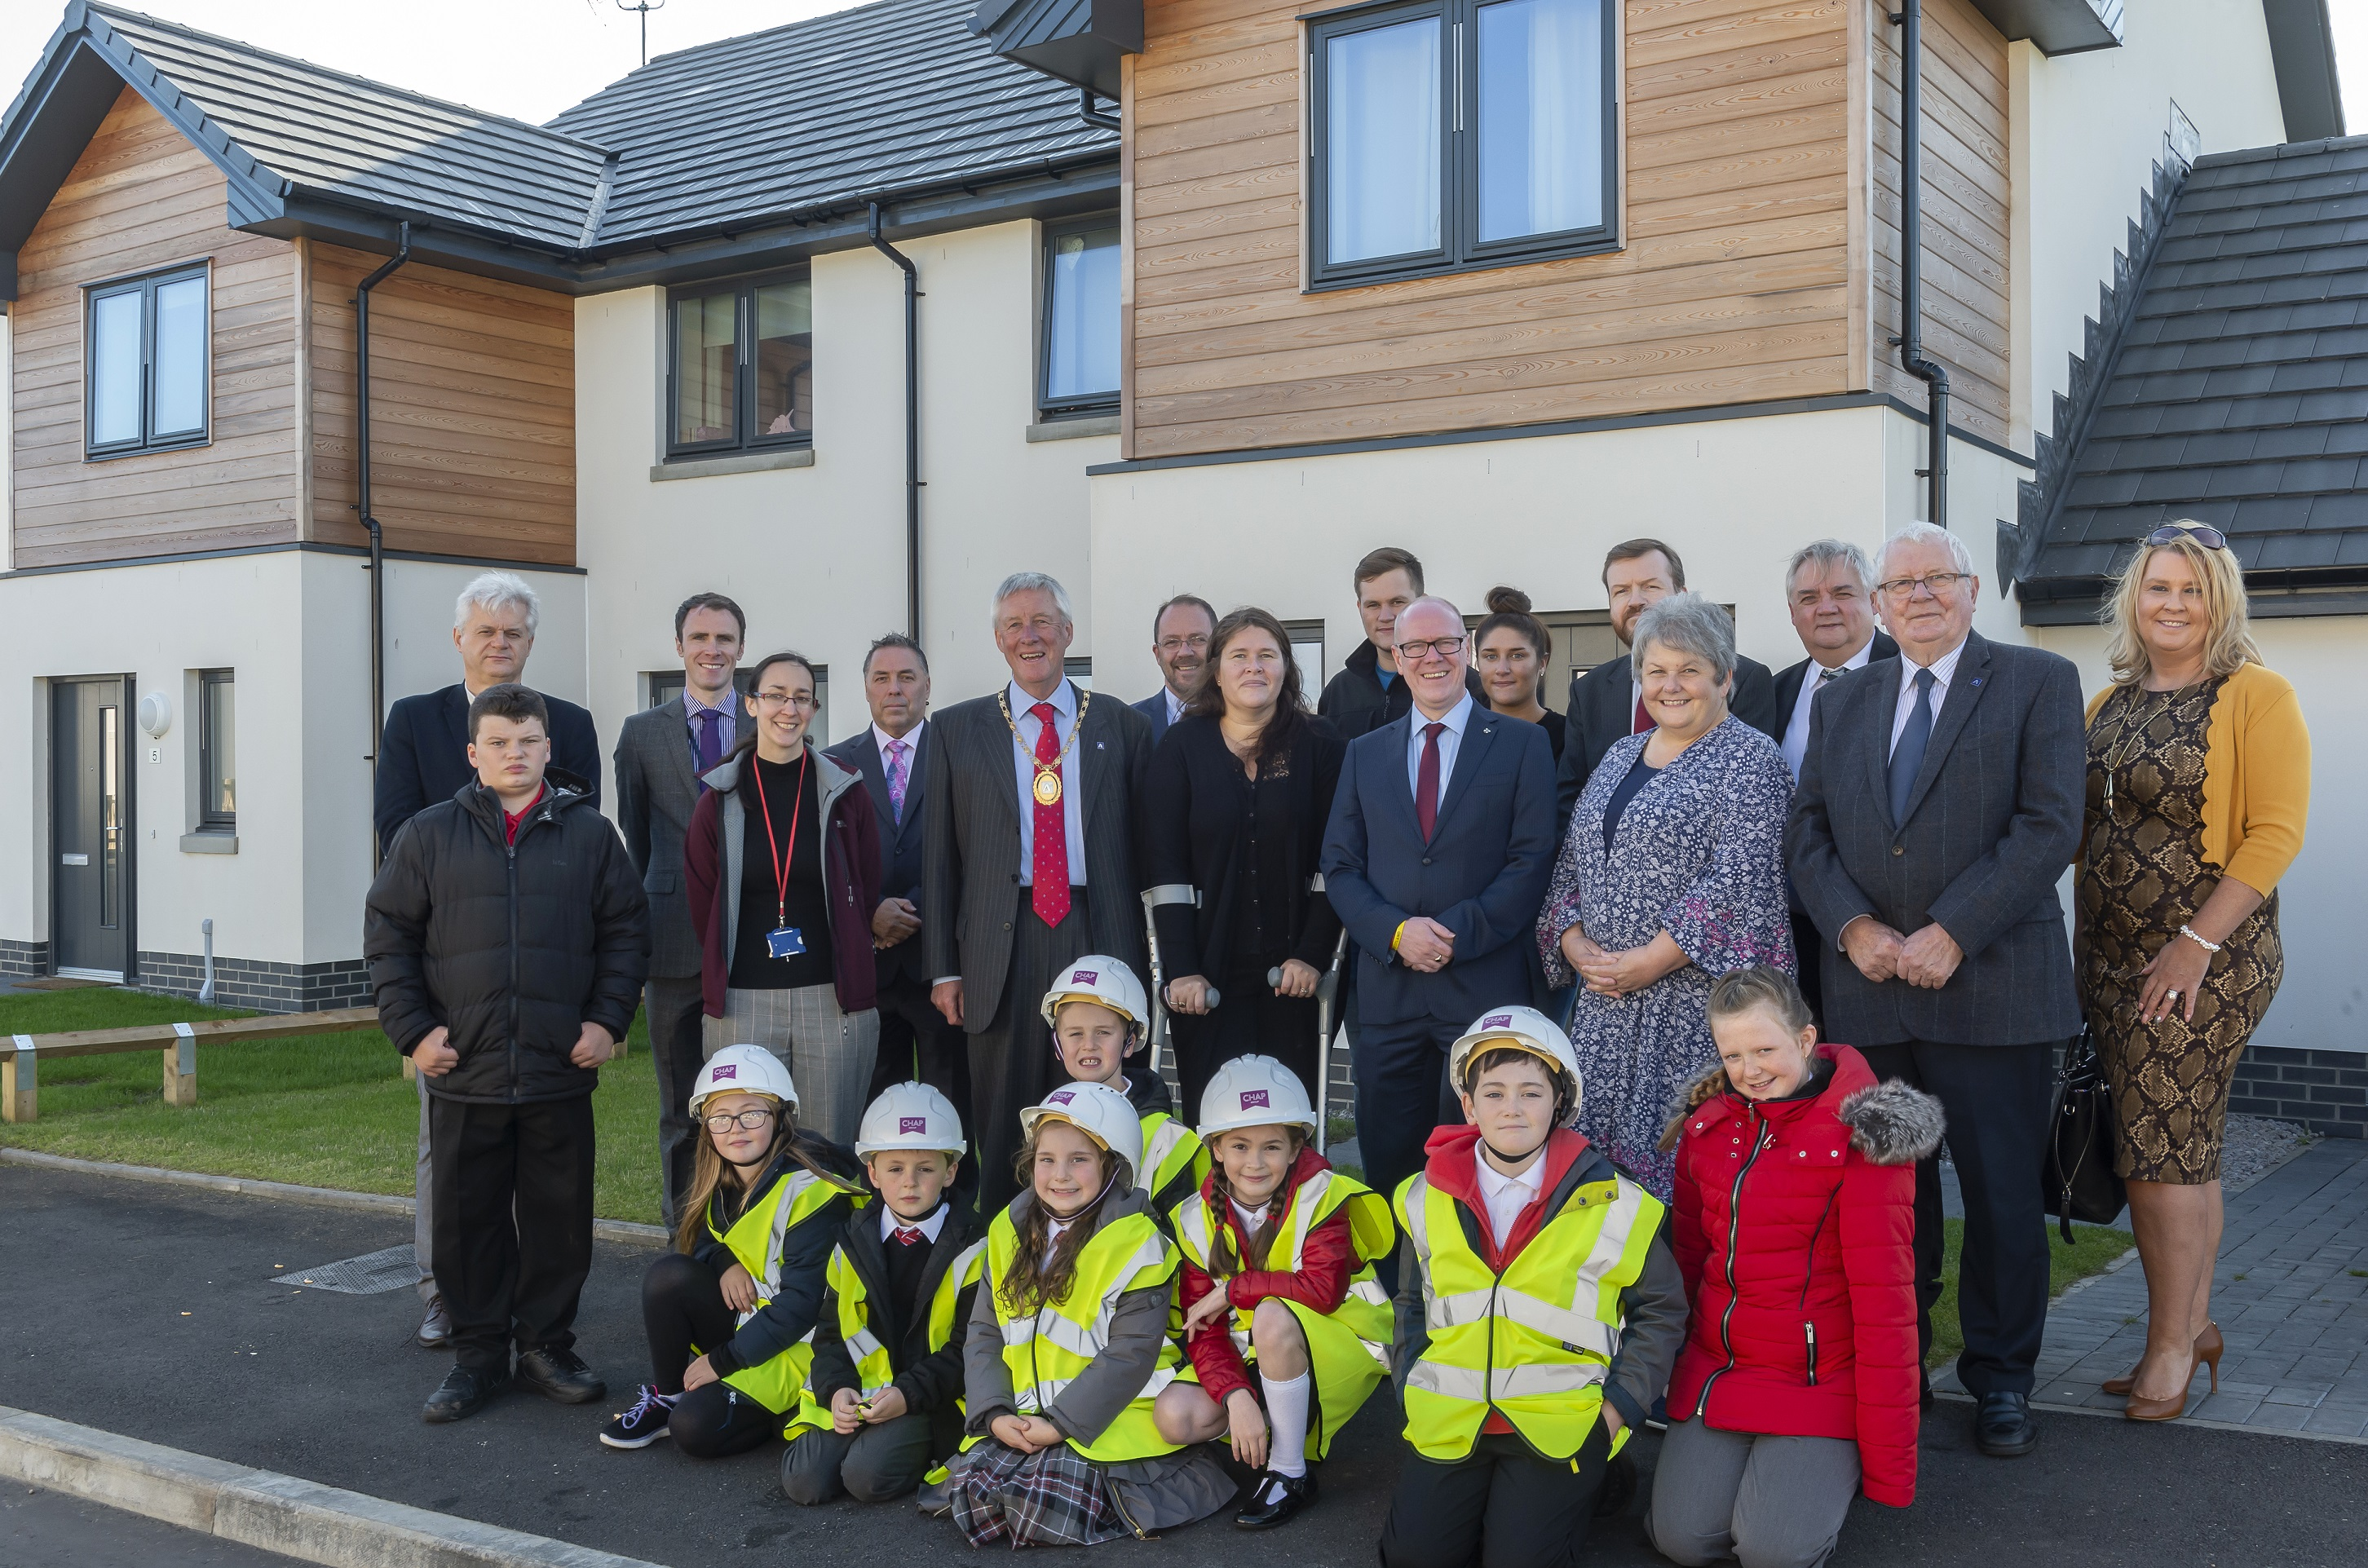 The opening of the new development in Peterhead